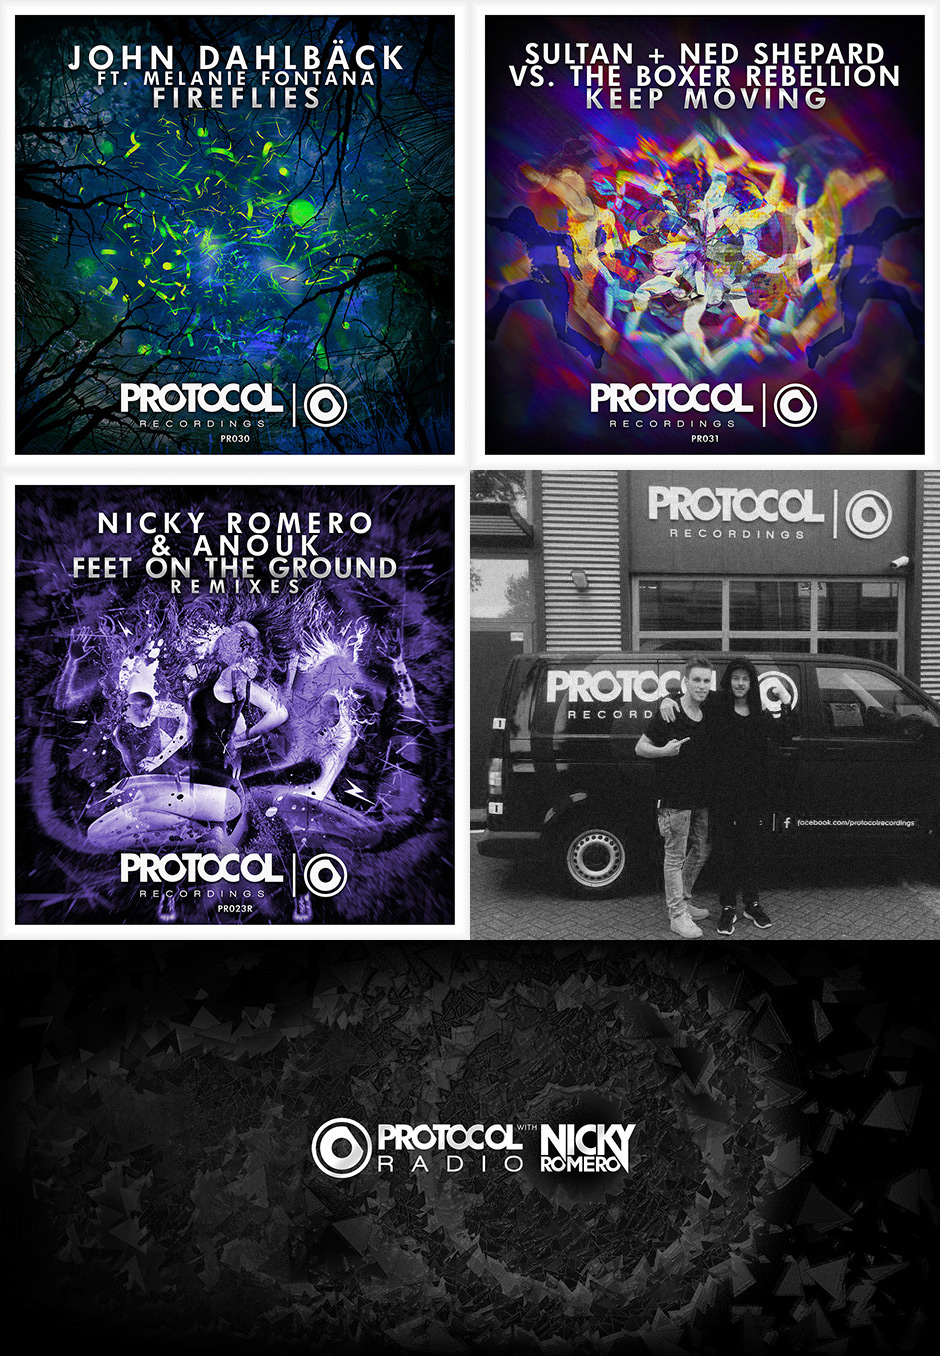 Protocol Recordings - Cover arts on Behance